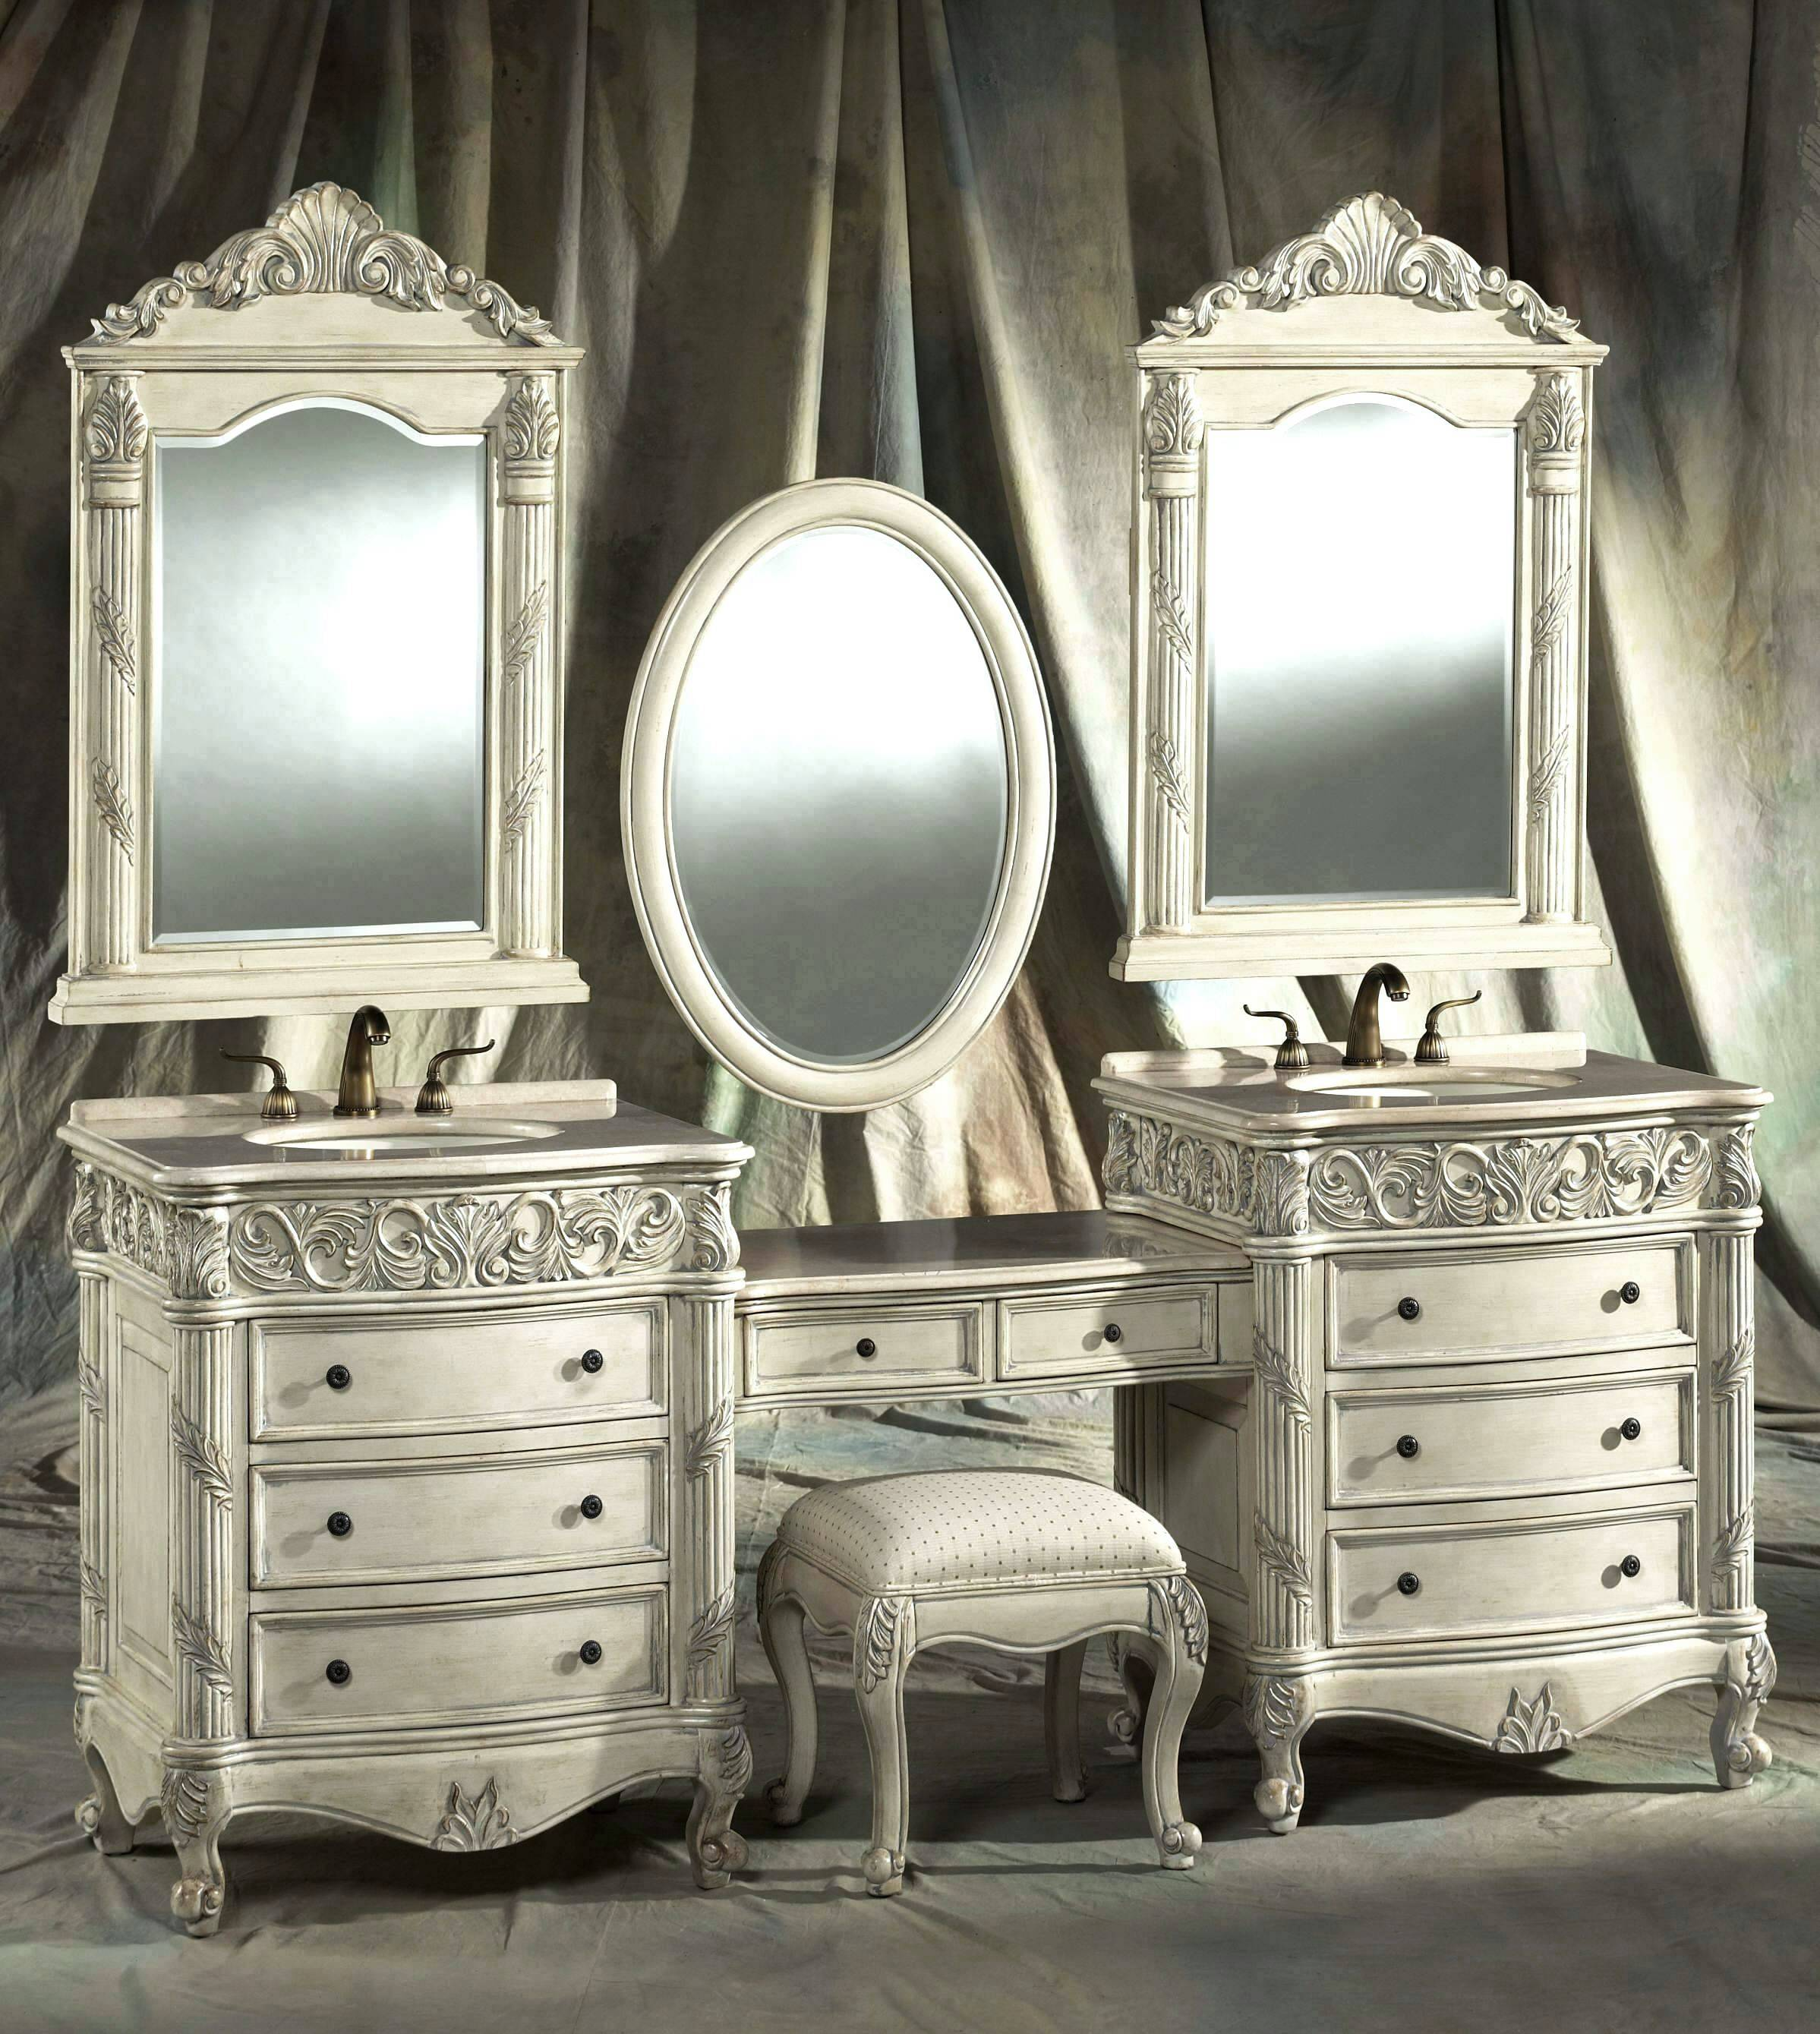 87 inch double vanities vanity make up stool view higher quality high resolution photo geotapseo Gallery